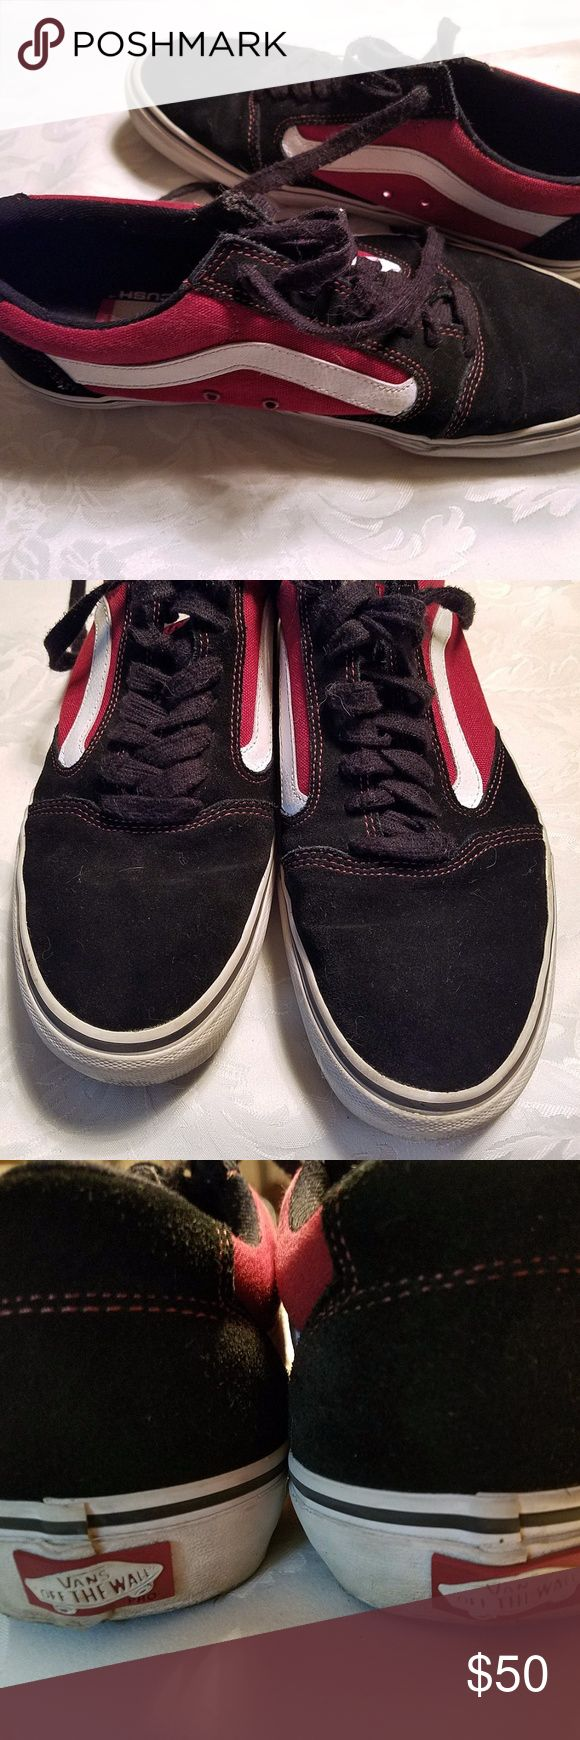 "VANS TNT 5 Skate Shoes Black/Dark Red Vans ""Off The Wall"" Ultracush Pro Skate Shoes. Canvas and Suede Upper. Classic Vans Waffle Sole. Gel Heel Insert.  VN-0L2ZBDK  Color: Black/Dark Red Size 9.5   Used in good condition. Vans Shoes Athletic Shoes"